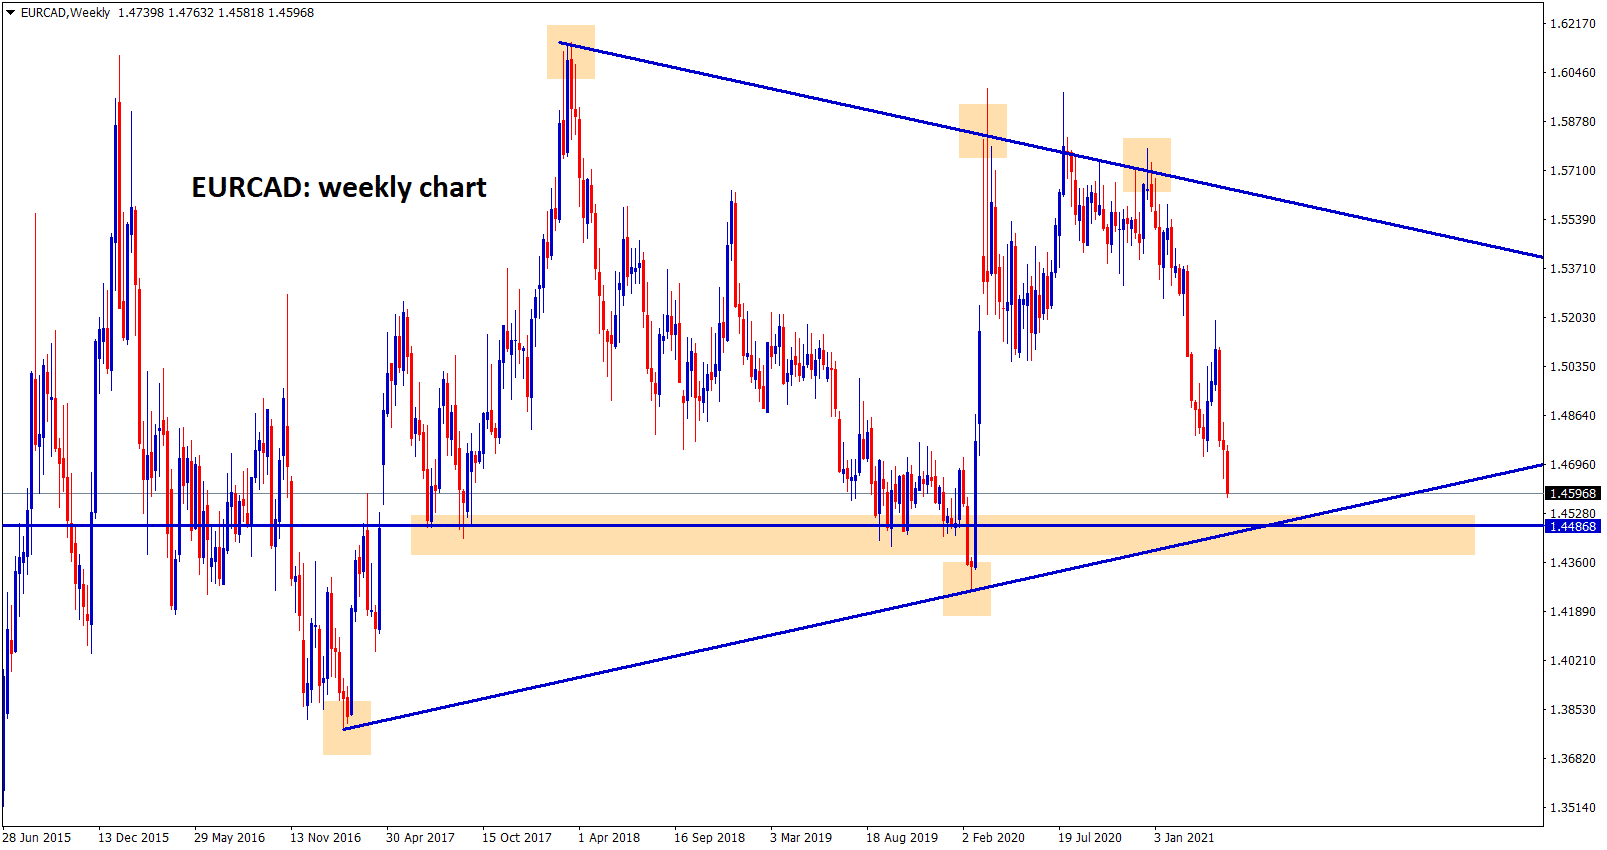 EURCAD going to reach the support zone in weekly chart.